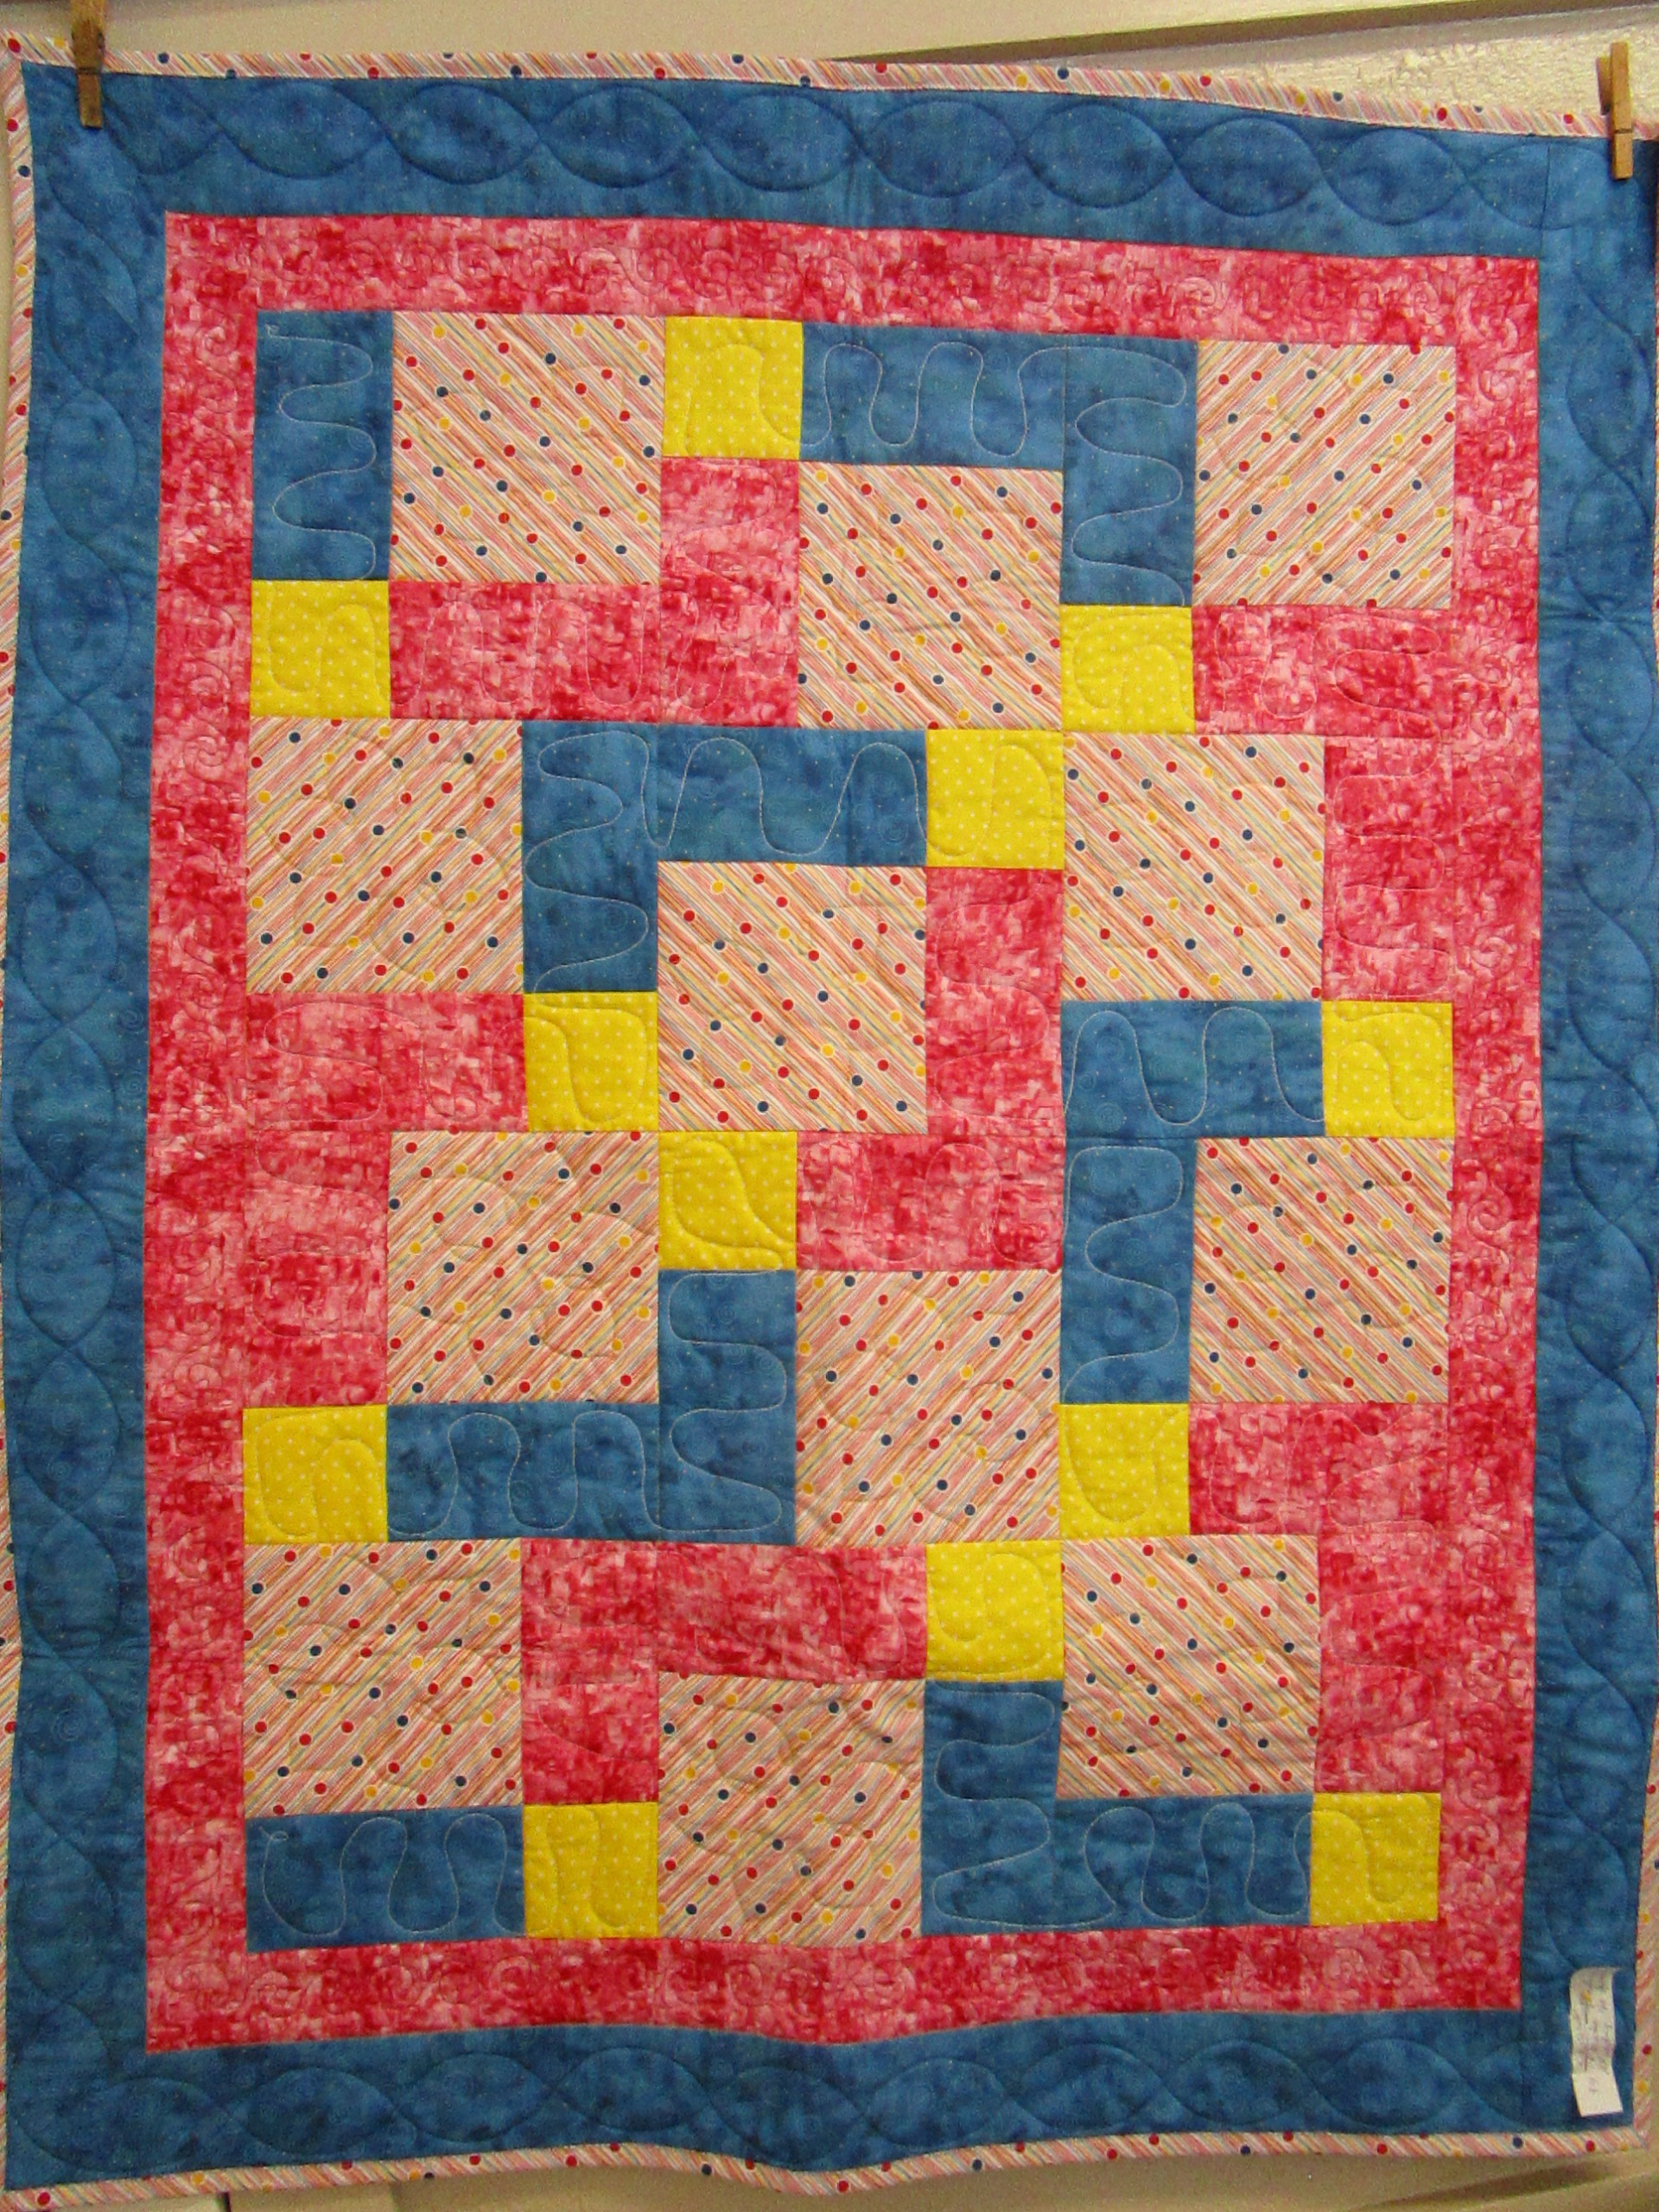 Comfort Quilts | Independence Hall Quilters